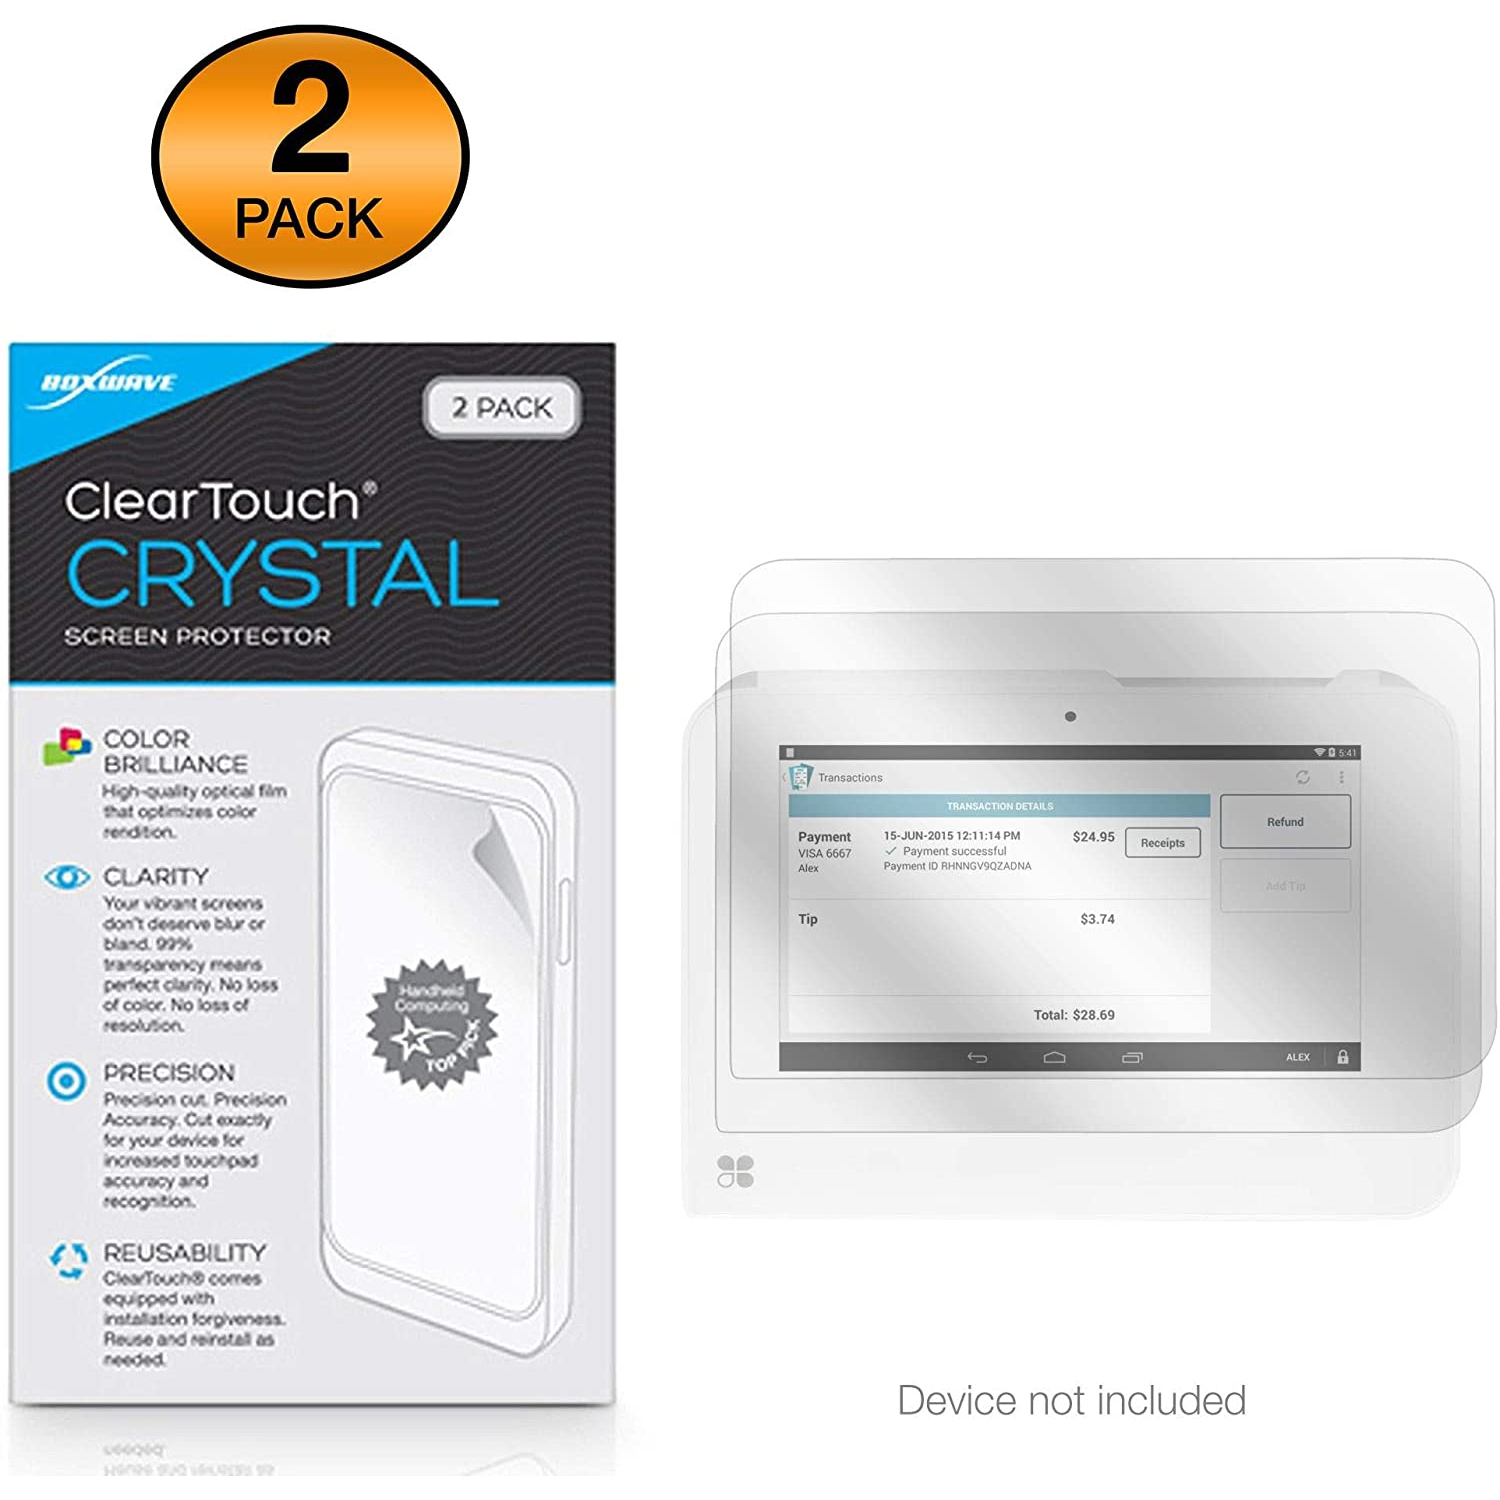 Clover Mini Screen Protector Boxwave Cleartouch Crystal 2 Pack Hd Film Skin Shields From Scratches For Clover Best Buy Canada